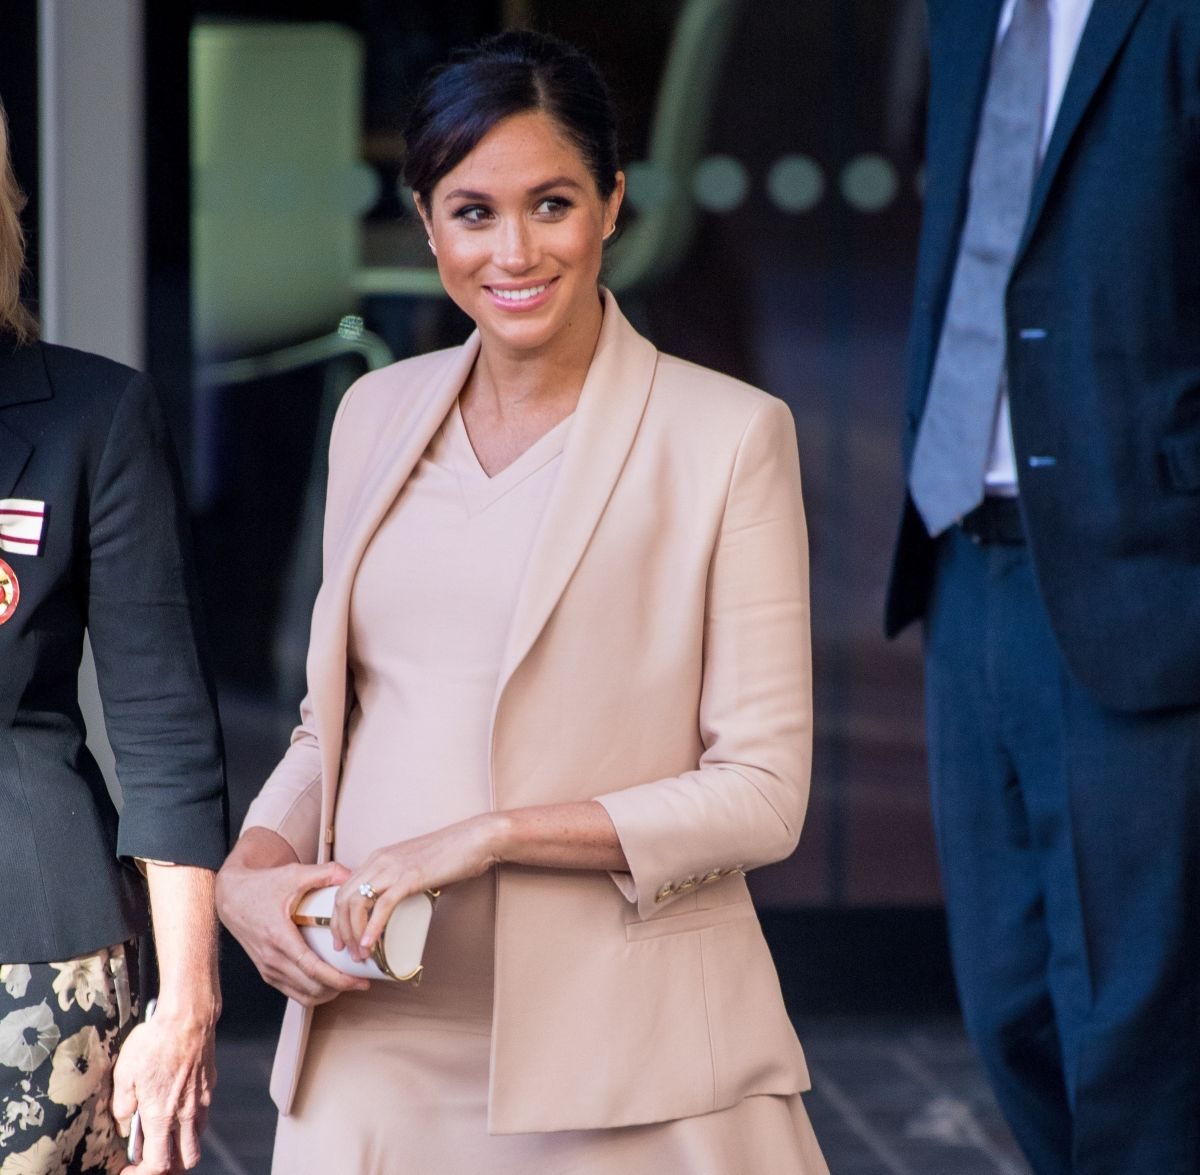 Pregnant MEGHAN MARKLE Leaves National Theatre In London